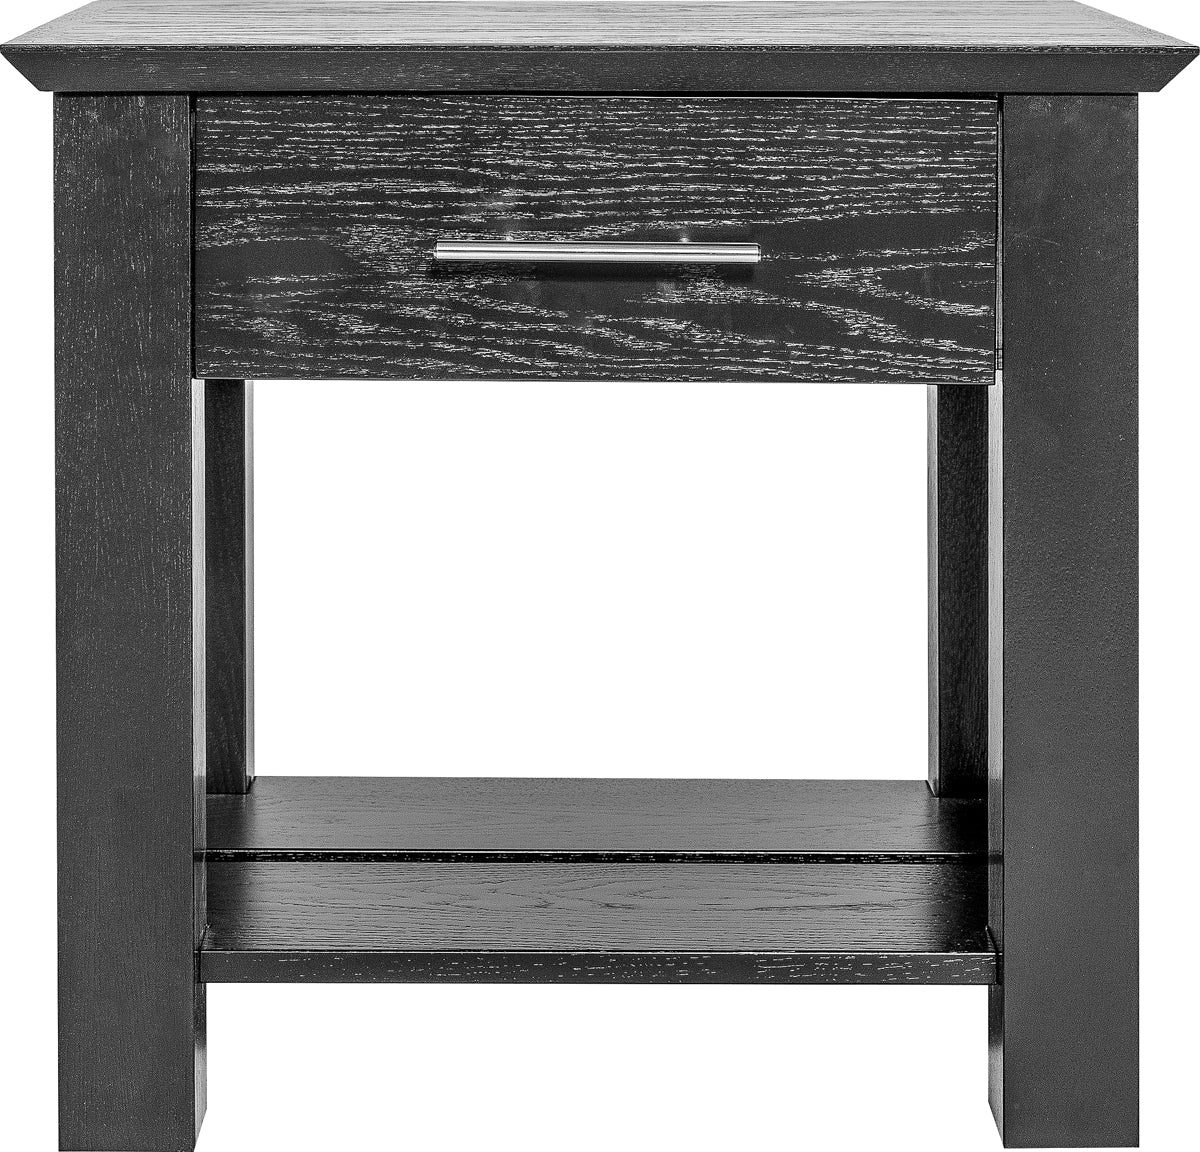 THE ALLEGIANT: Nightstand (1 drawer- small rear compartment)